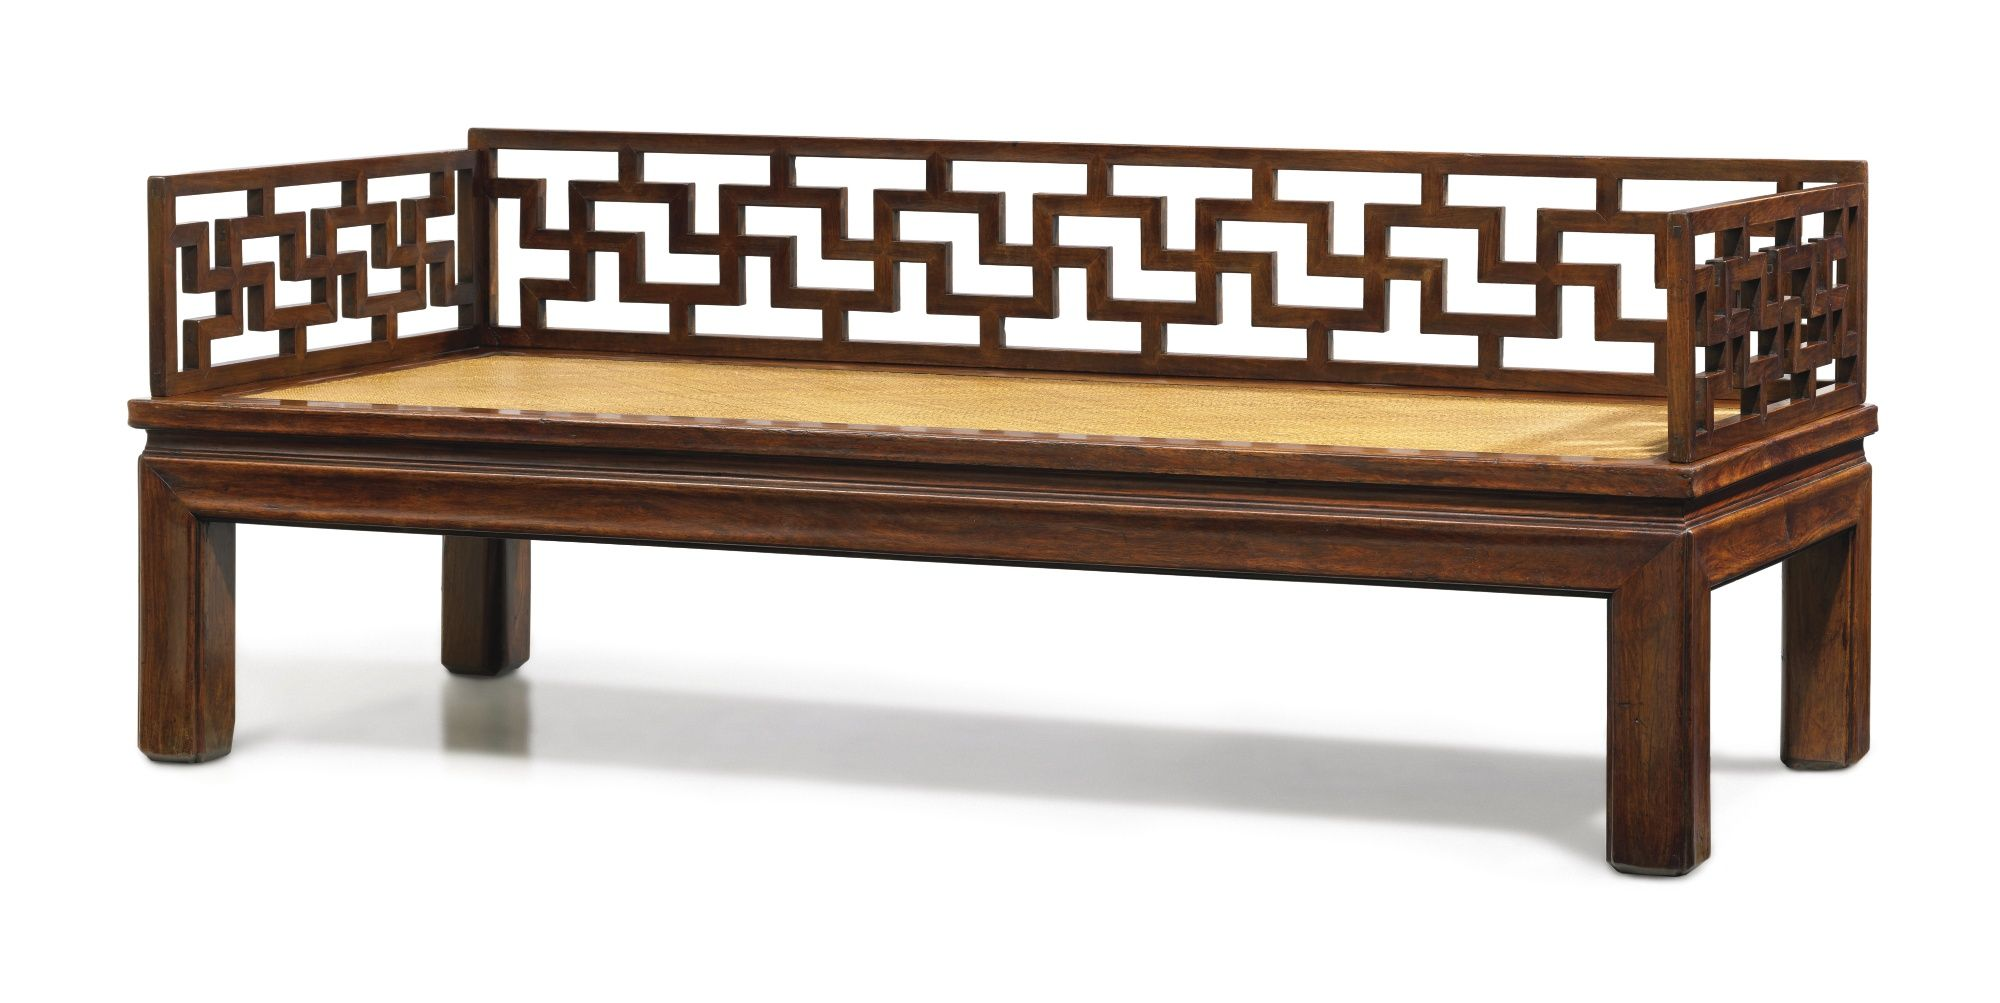 Superb A Huanghuali Couch Bed Luohan Chuang Late Ming Dynasty Gmtry Best Dining Table And Chair Ideas Images Gmtryco